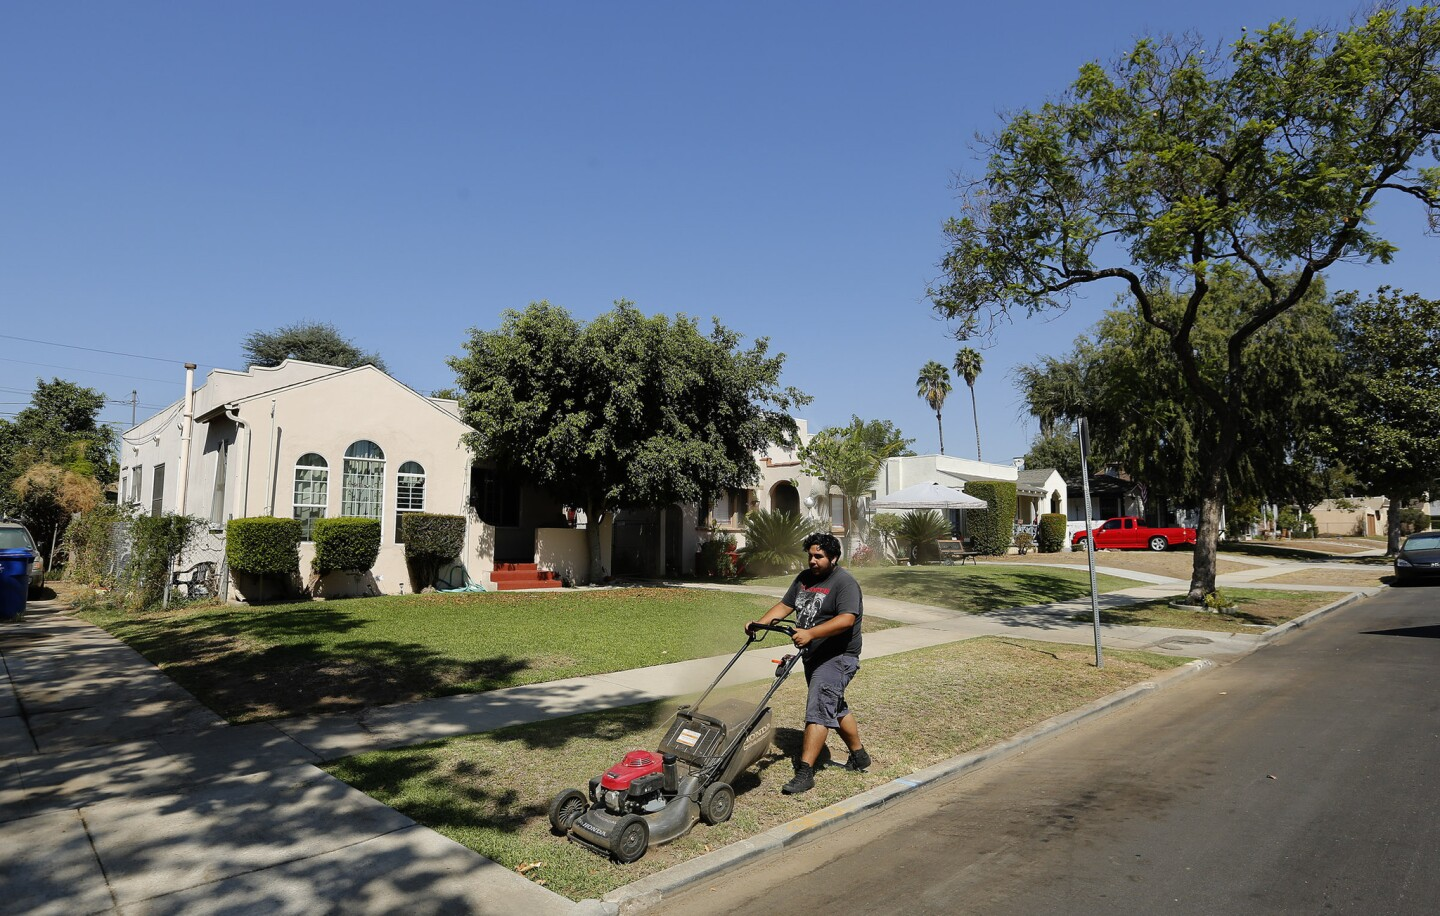 Gardener Leo Munguia mows the front lawn of a home on Sheffield Avenue in El Sereno that is owned by Caltrans. It is one of many properties purchased by the agency in the 1950s and '60s in anticipation of the 710 Freeway extension, which was never finished.